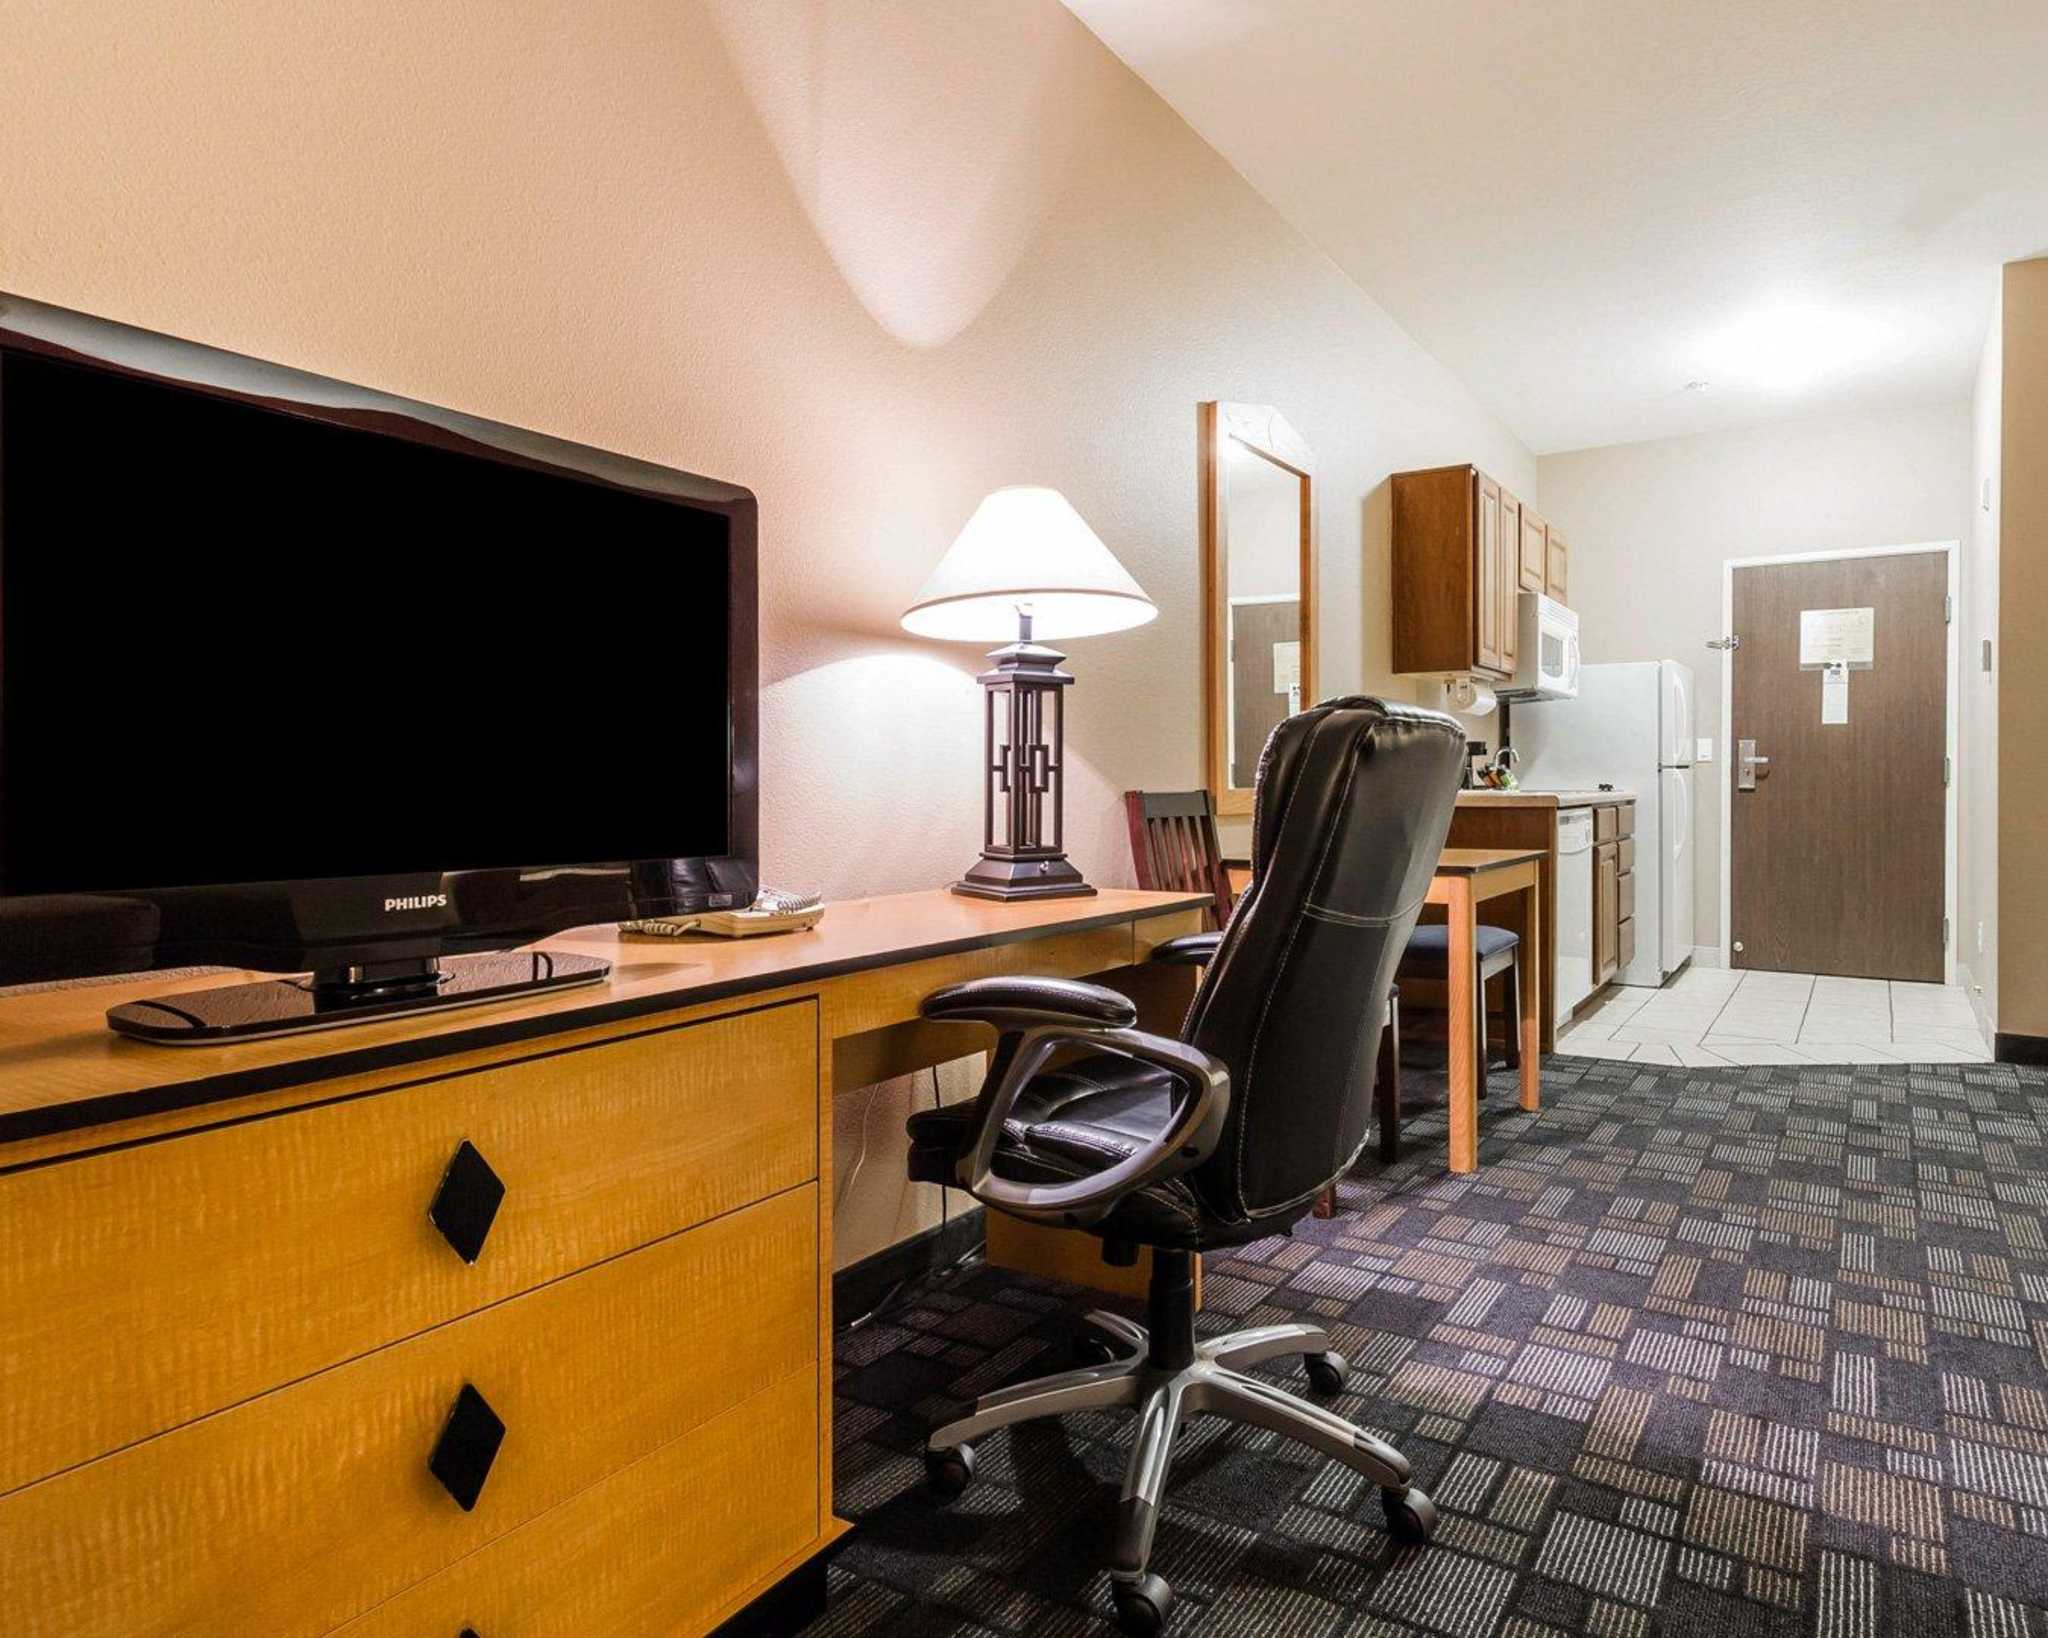 MainStay Suites image 17